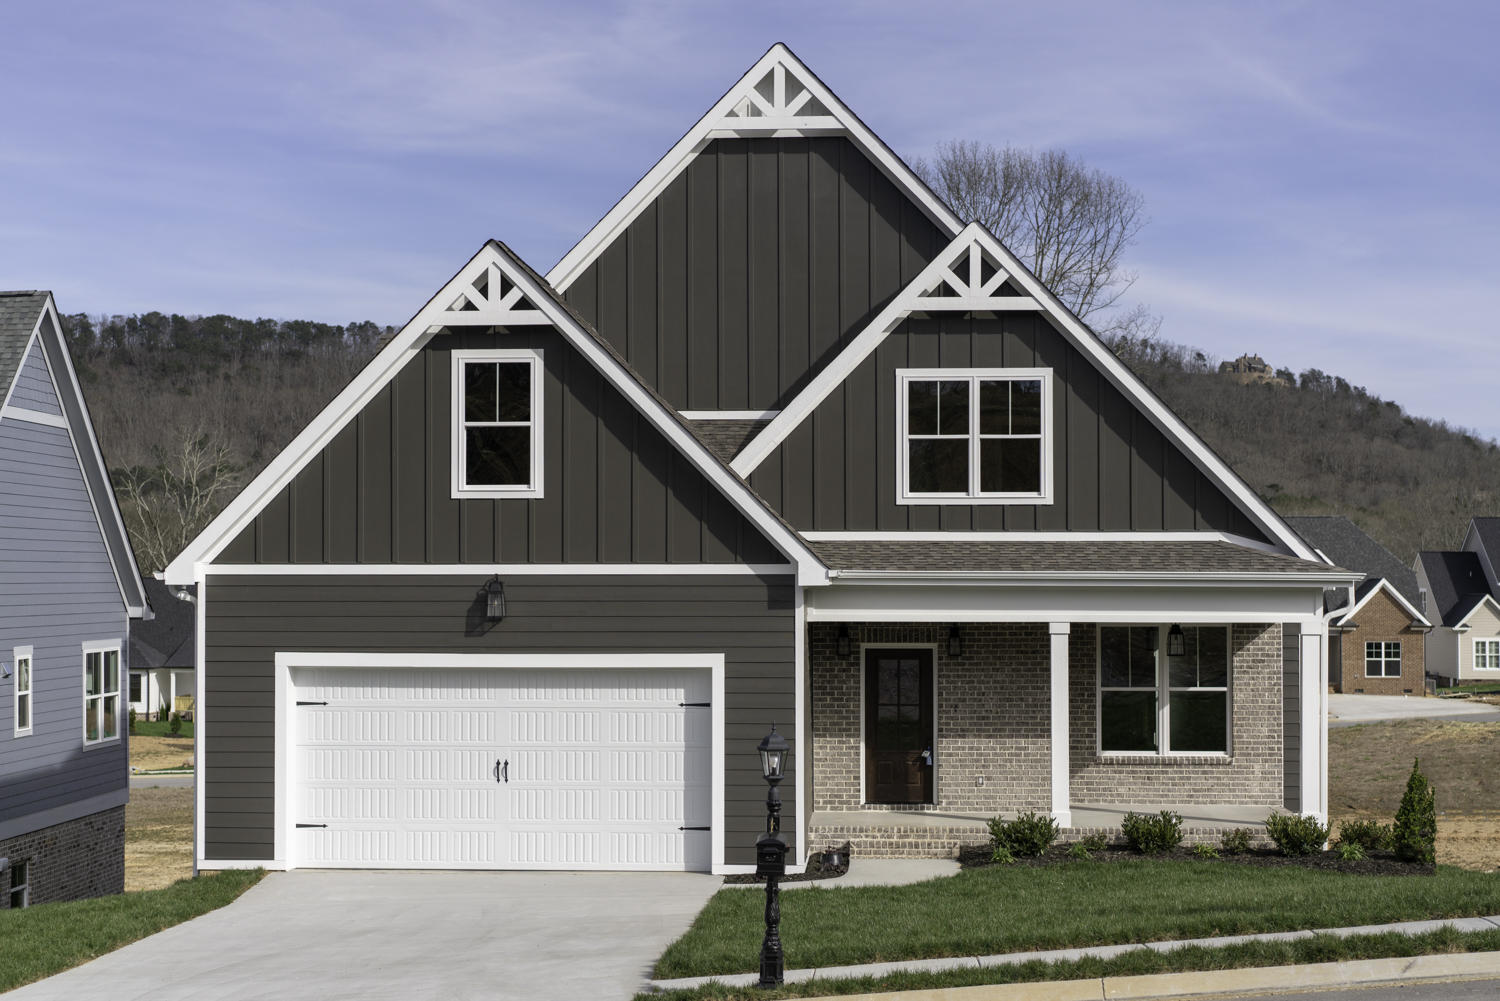 2393 Weeping Willow Dr, Ooltewah, TN 37363